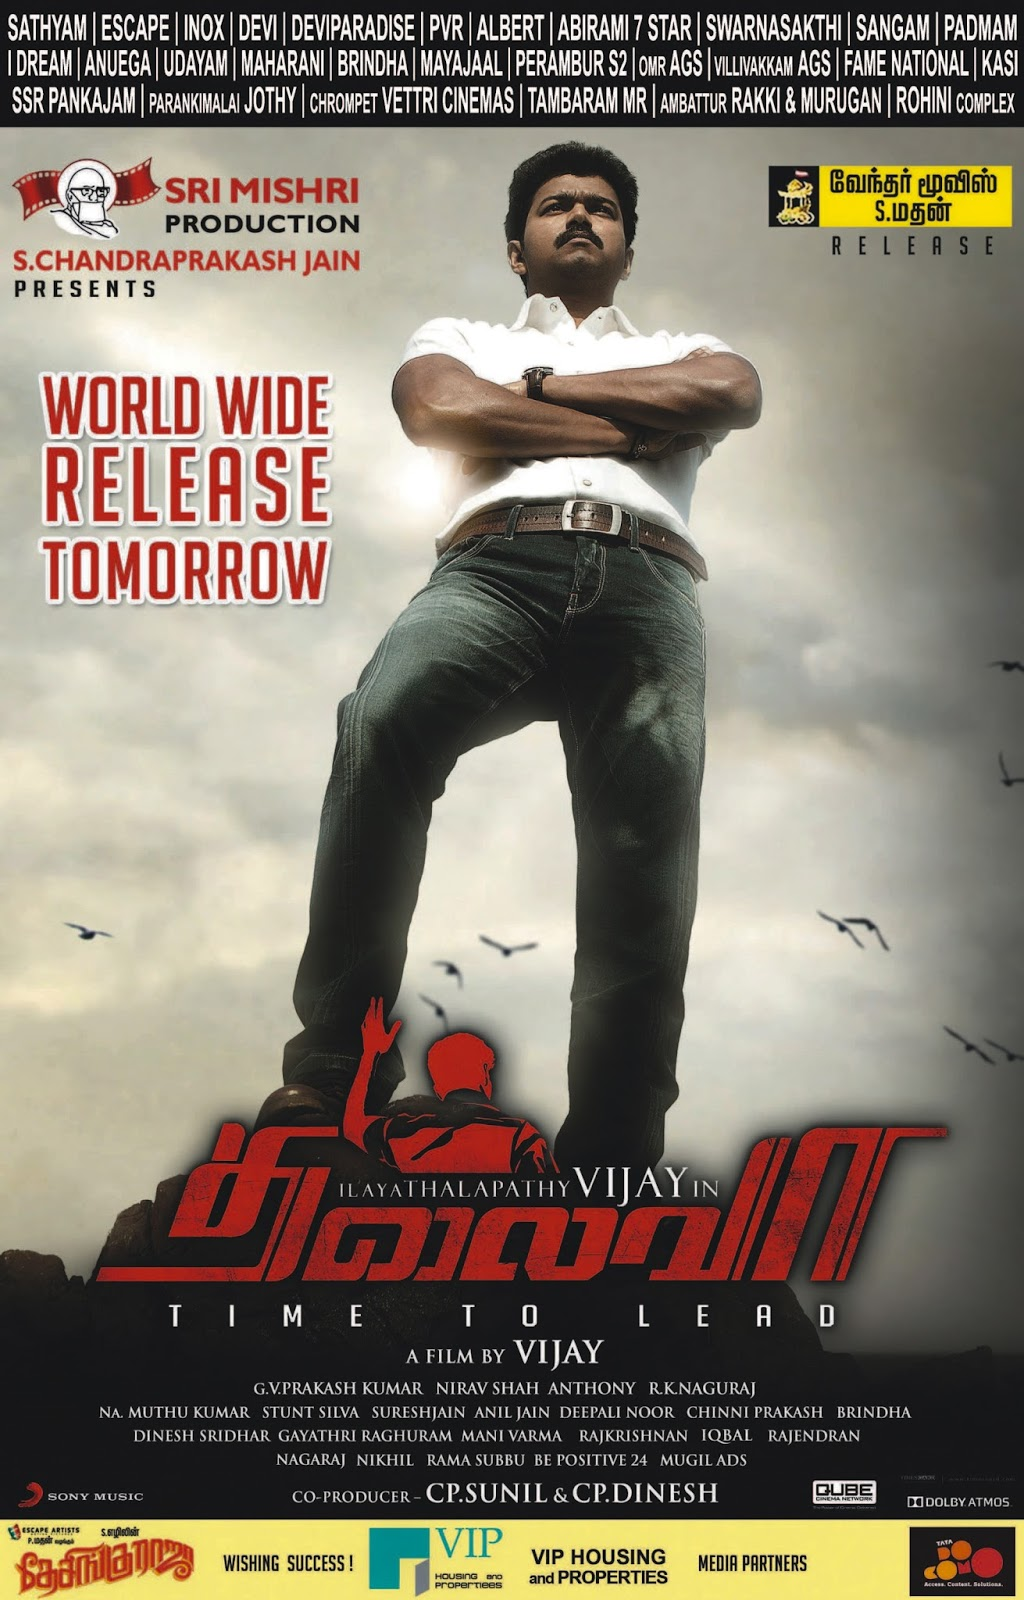 New Tamil Movie Poster Latest Tamil Movie Poster New Movie ...